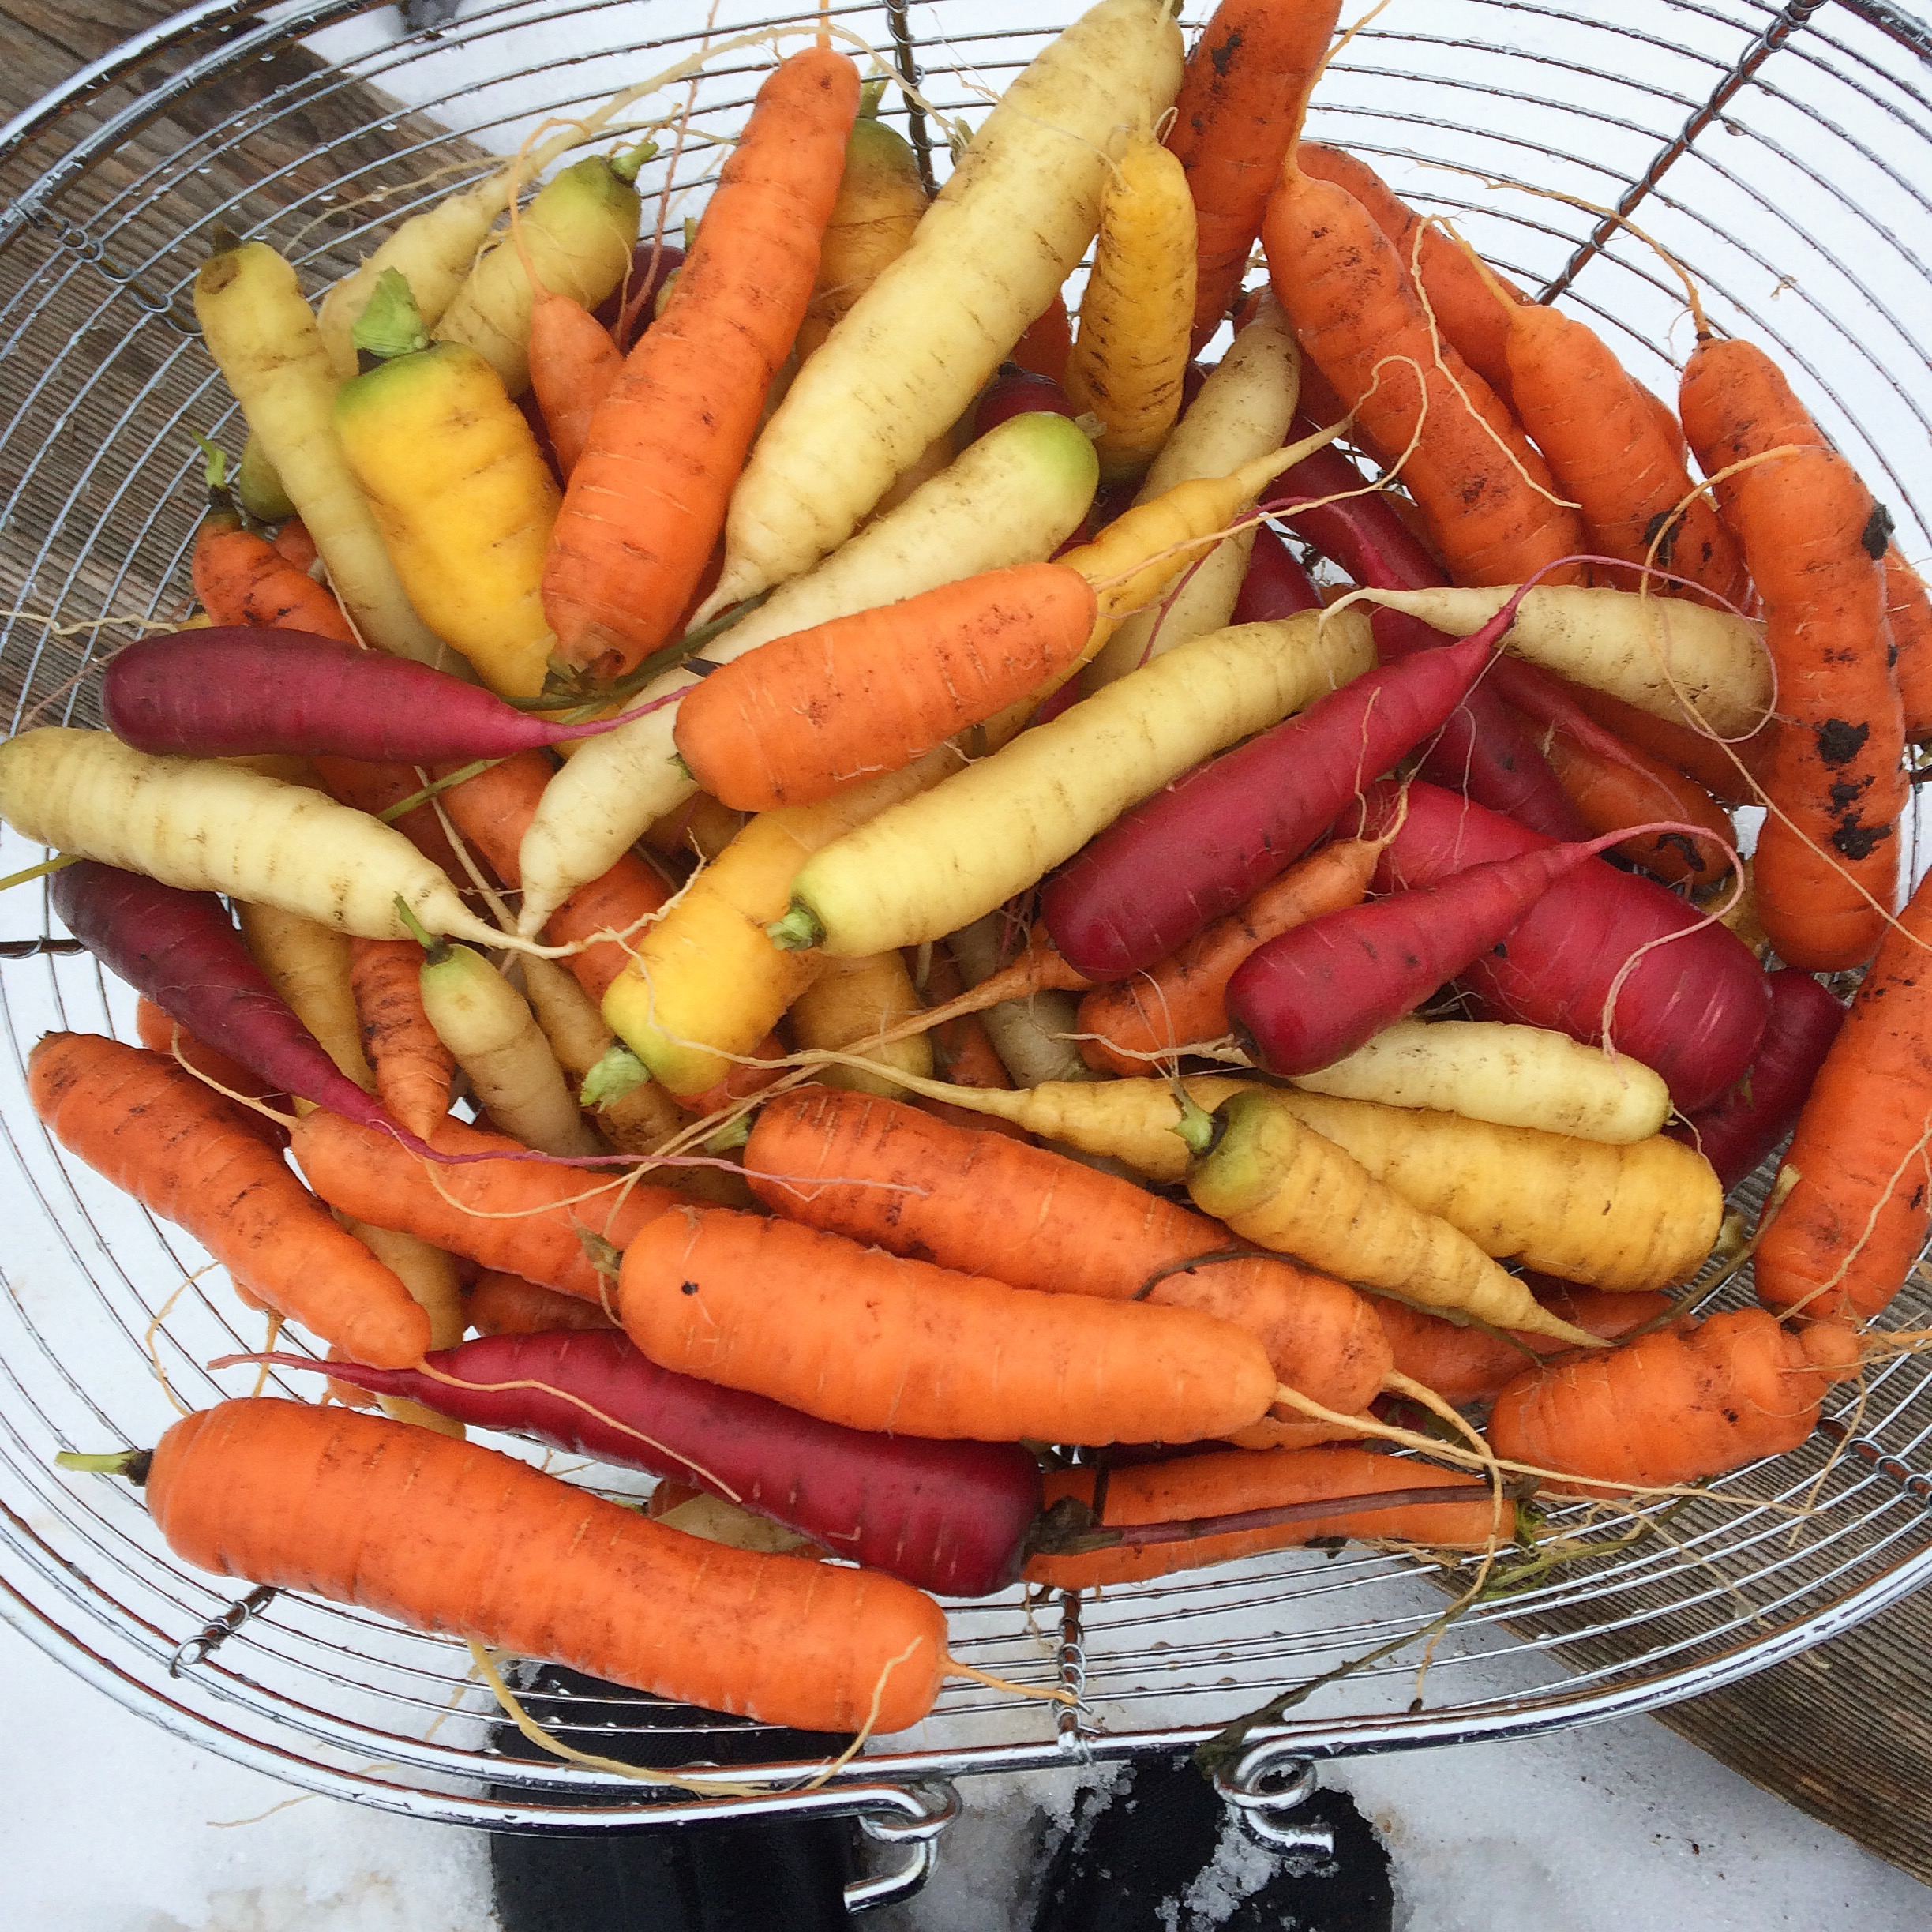 Starburst carrots dug in winter from the garden